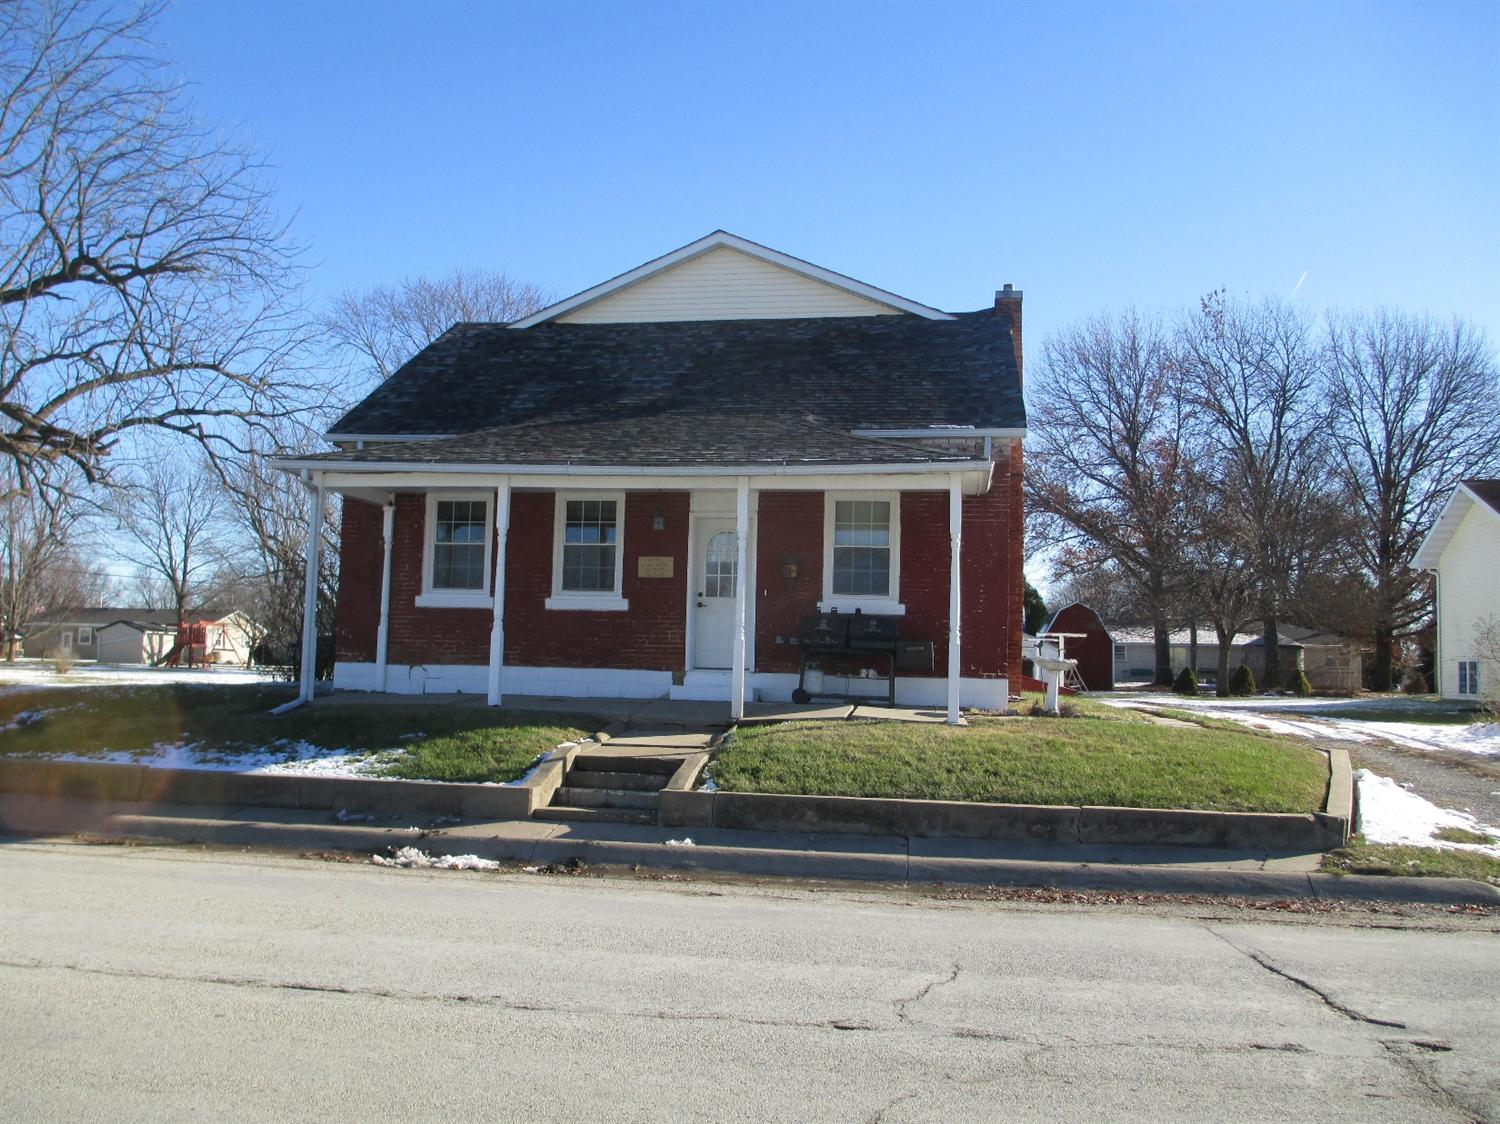 83 5th St, West Point, IA 52656